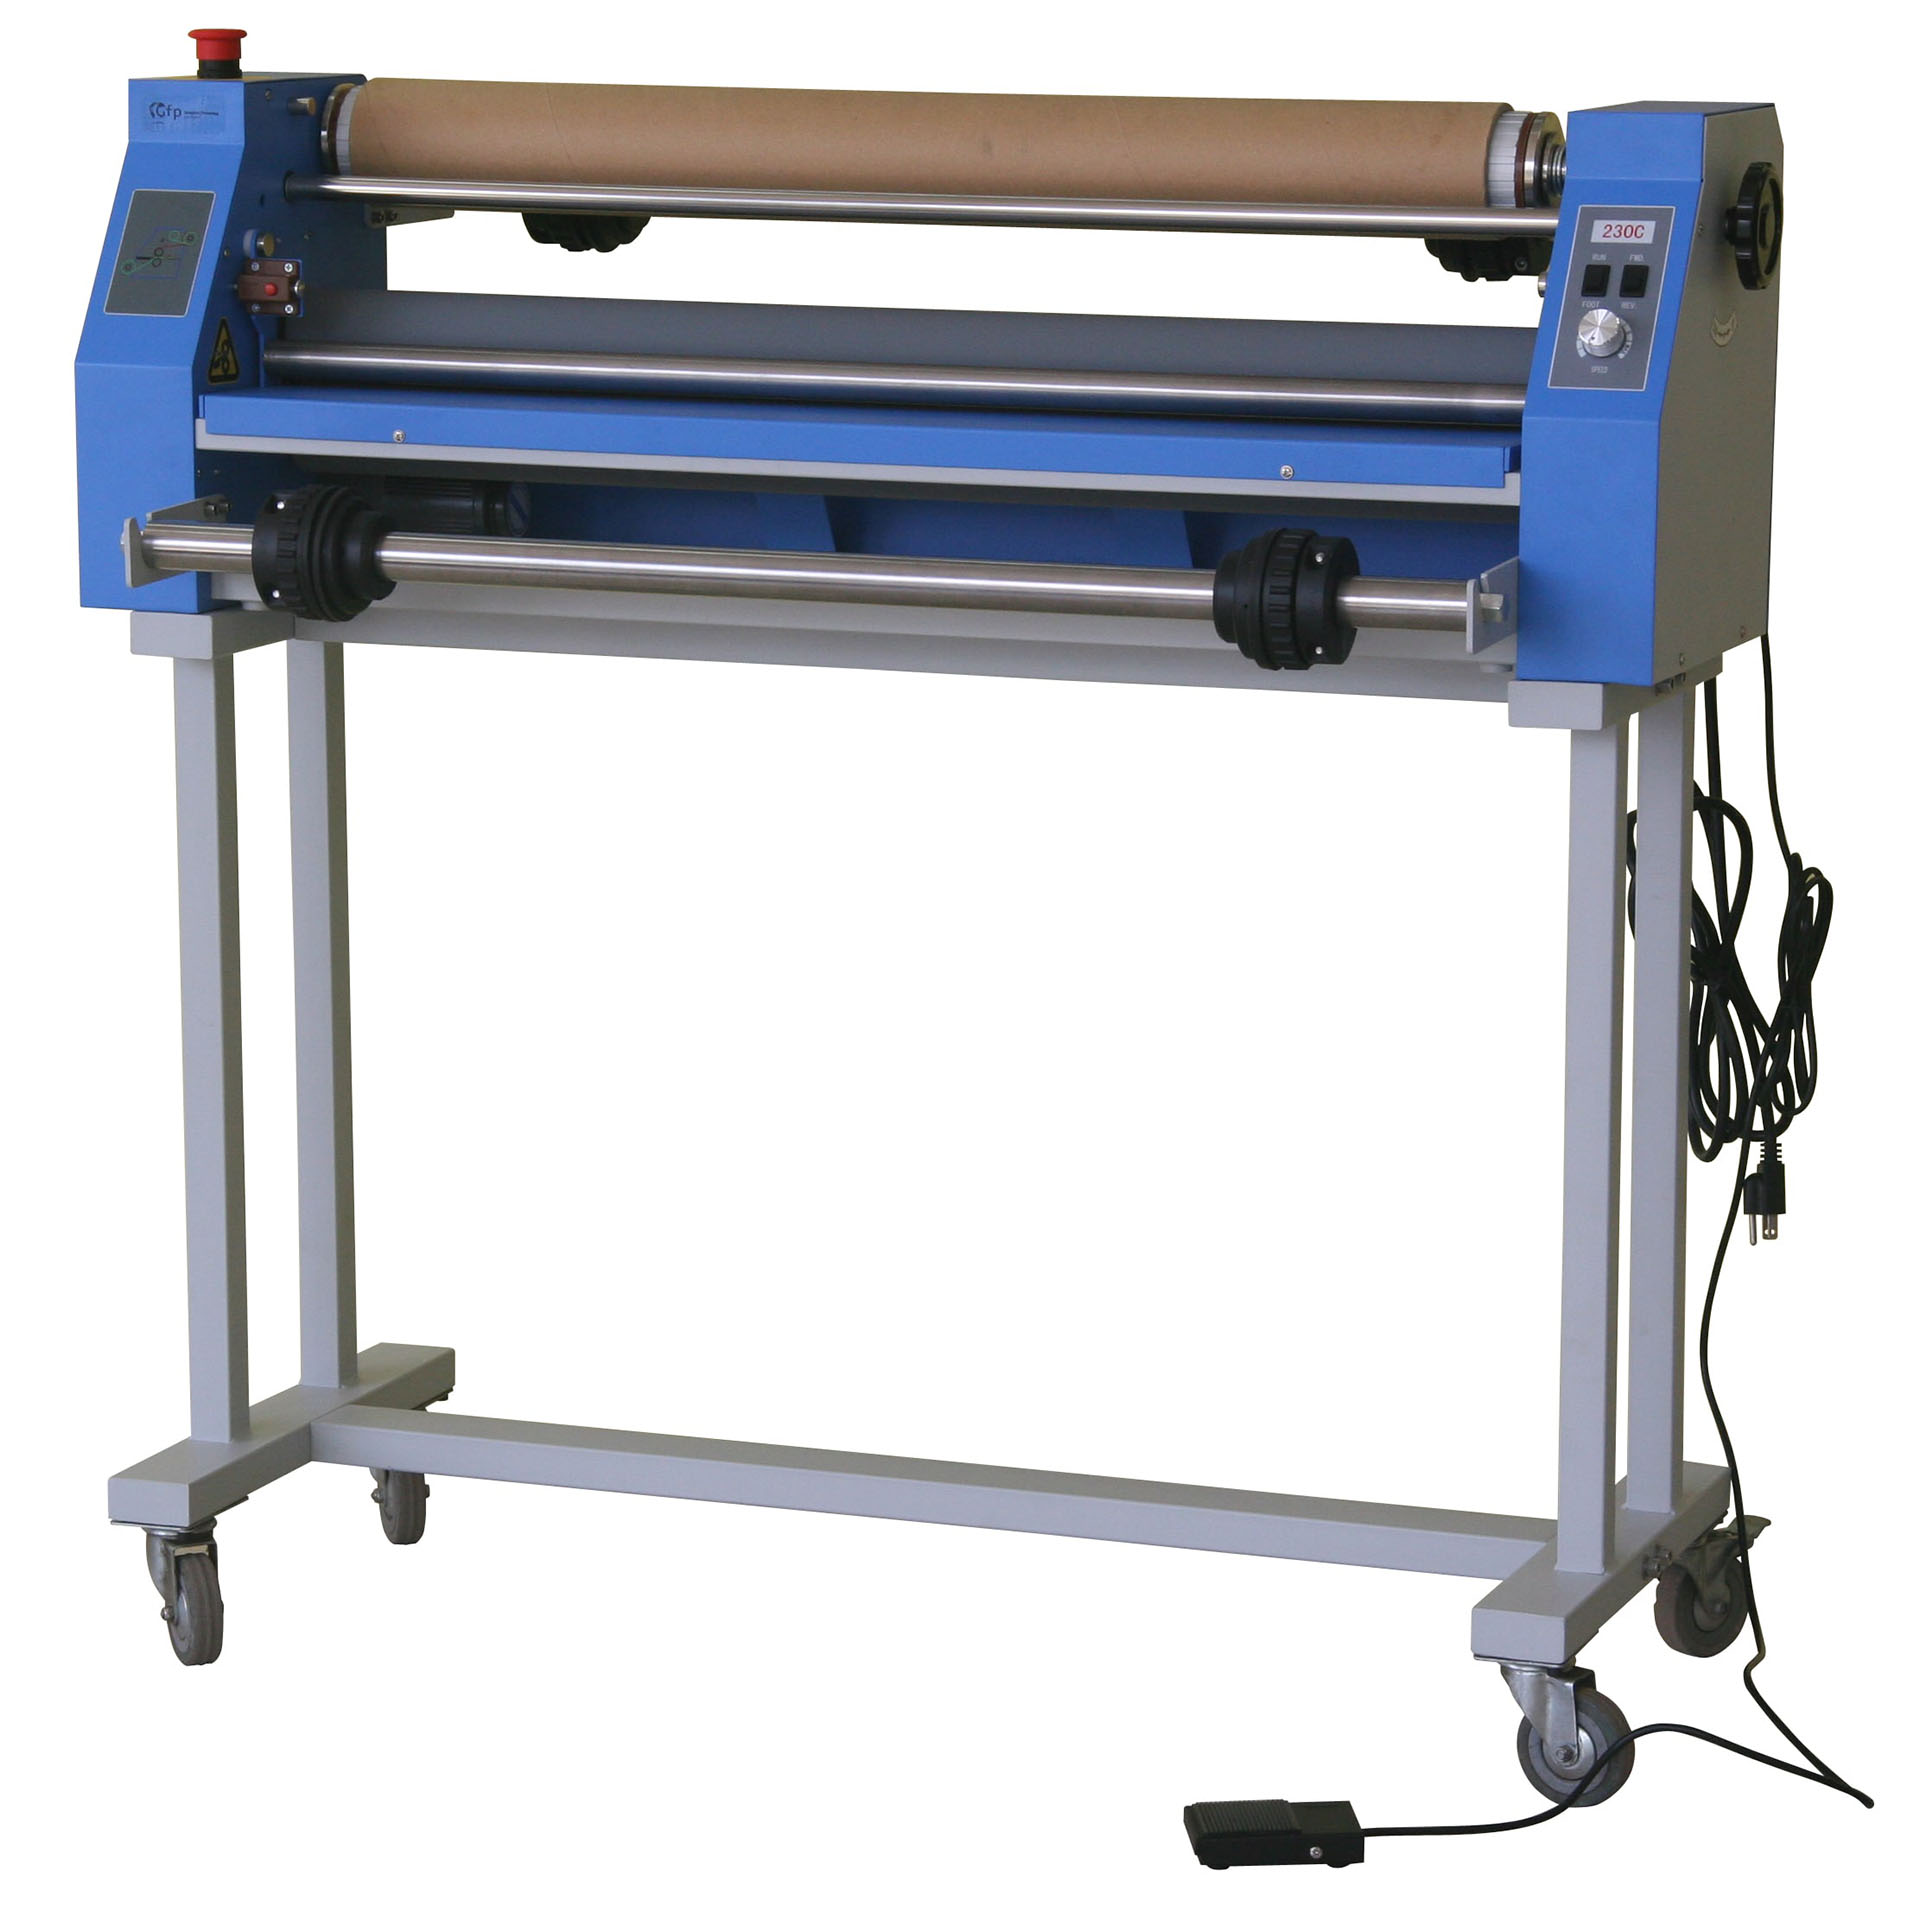 Graphic Finishing Partners 230C Compact Cold Laminator